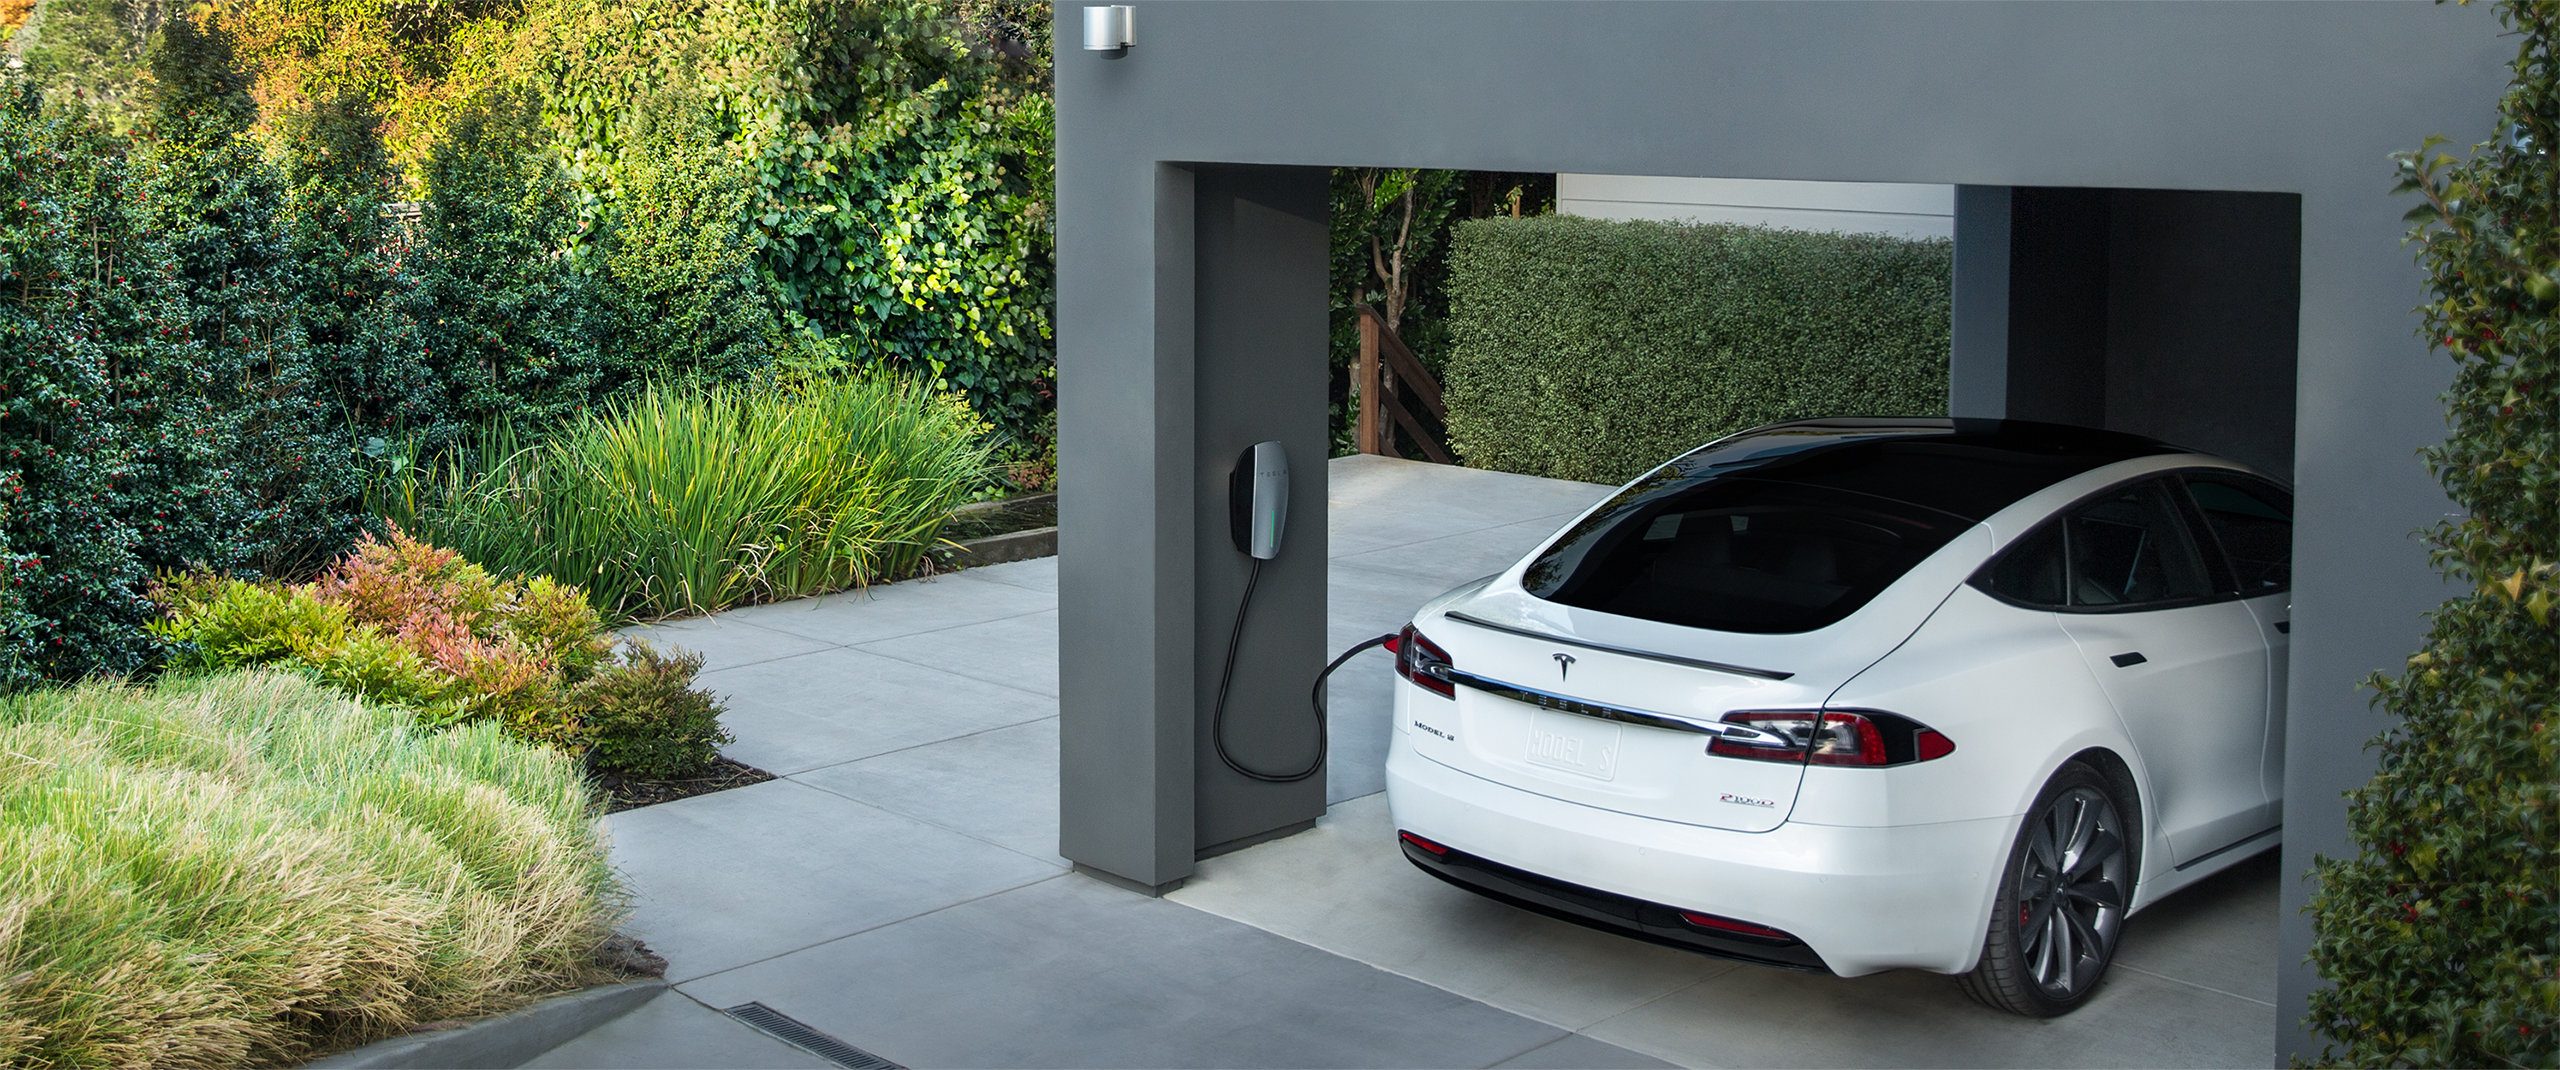 E-Mobility Tesla Charger